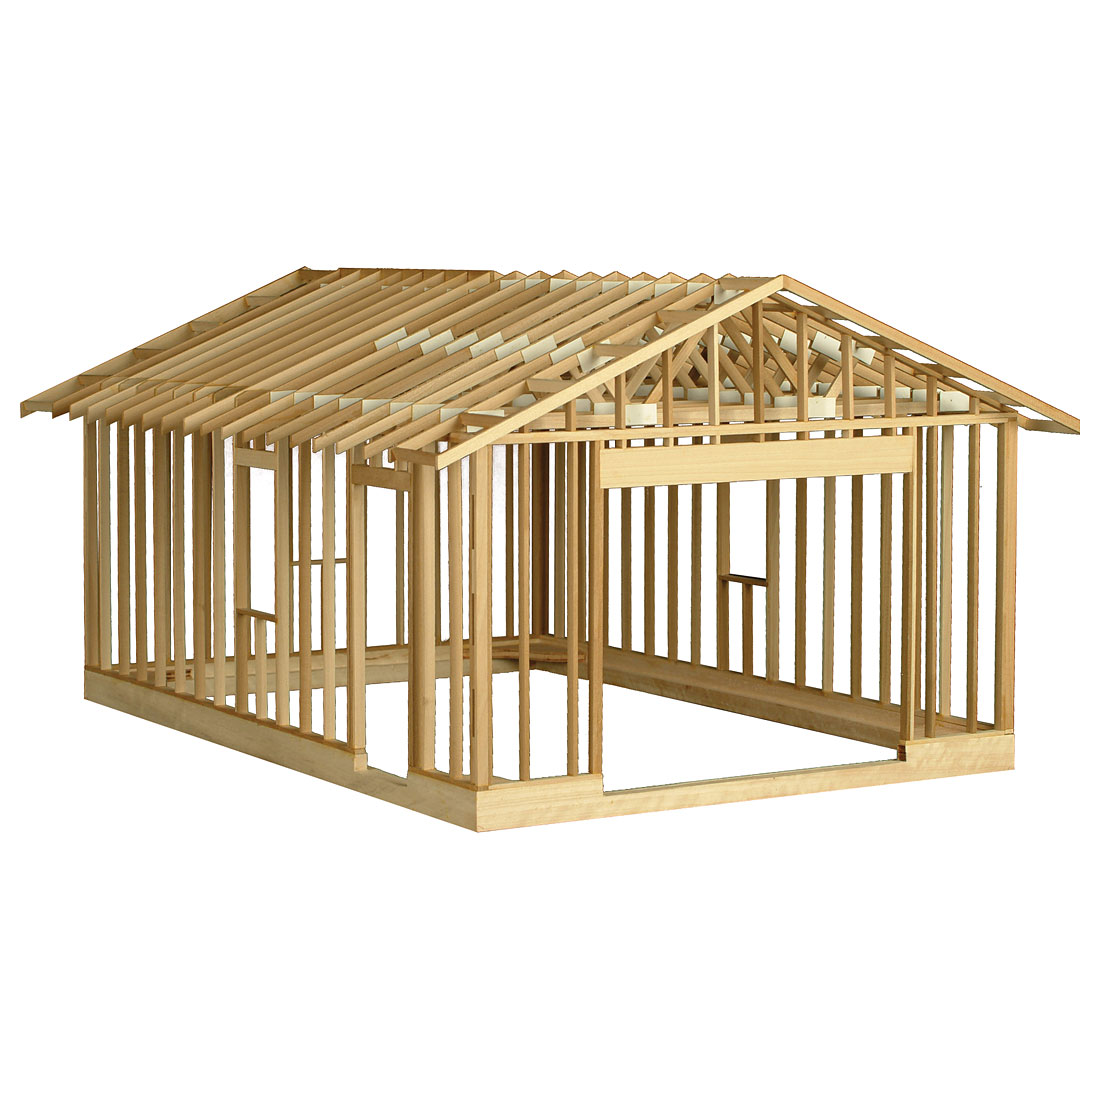 Garage framing kit 201 w31574 for A frame house plans with garage